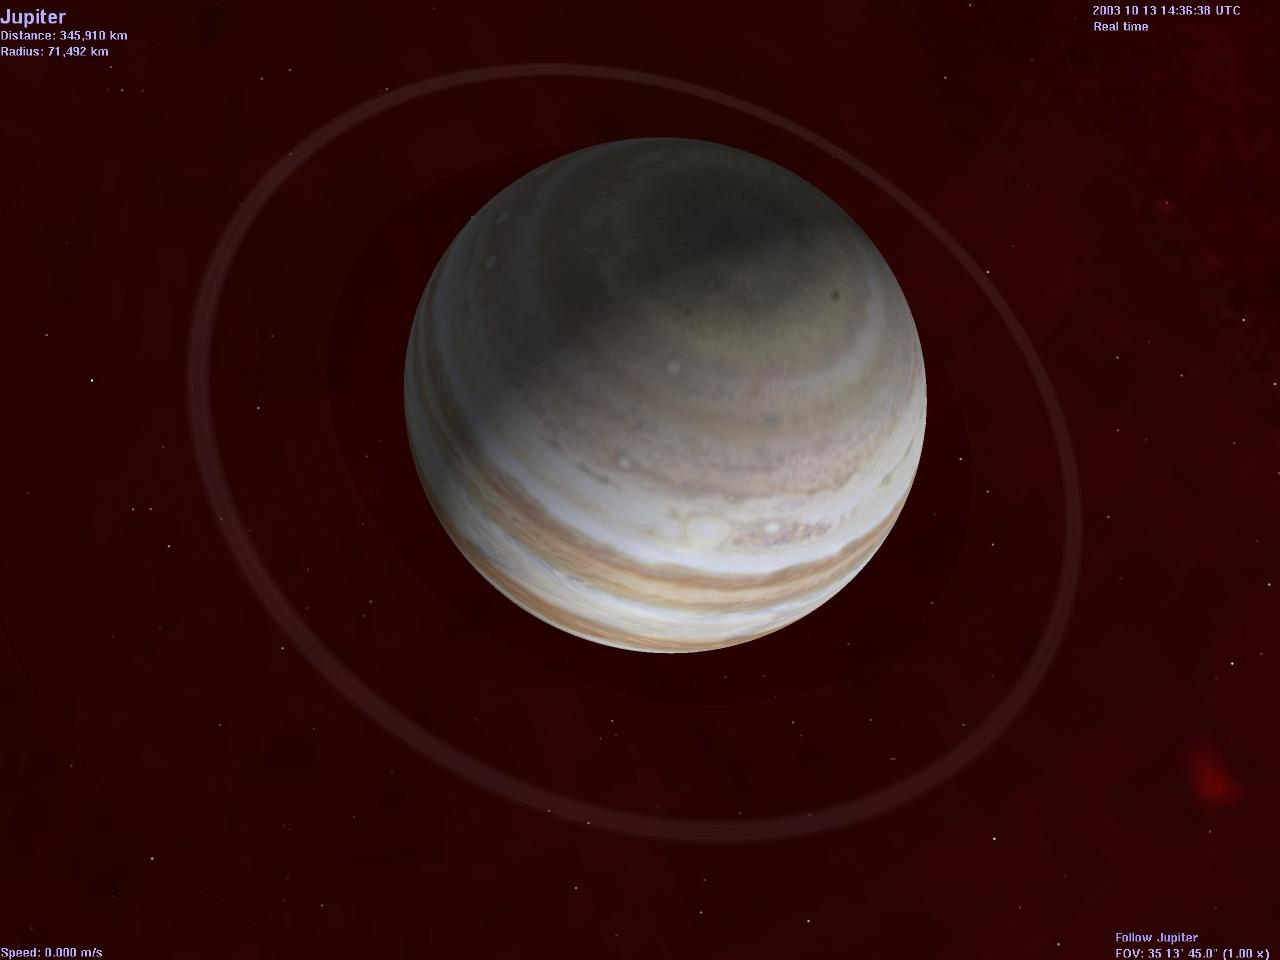 A look at Jupiter's rings. Image credit: Selden's Gallery of Celestia Pictures